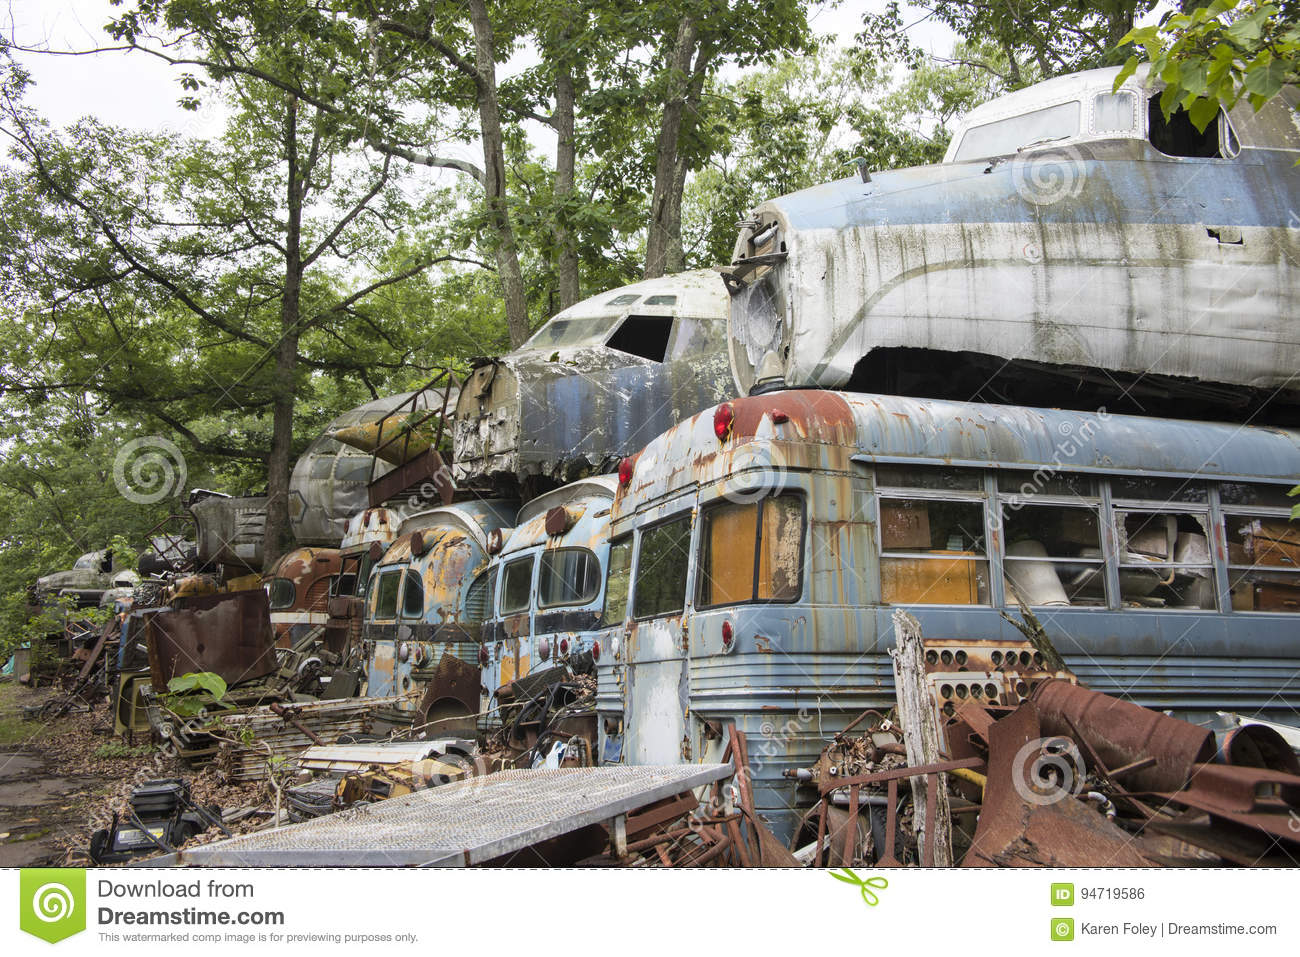 Military Buses And Aircraft In Junkyard Stock Photo - Image of